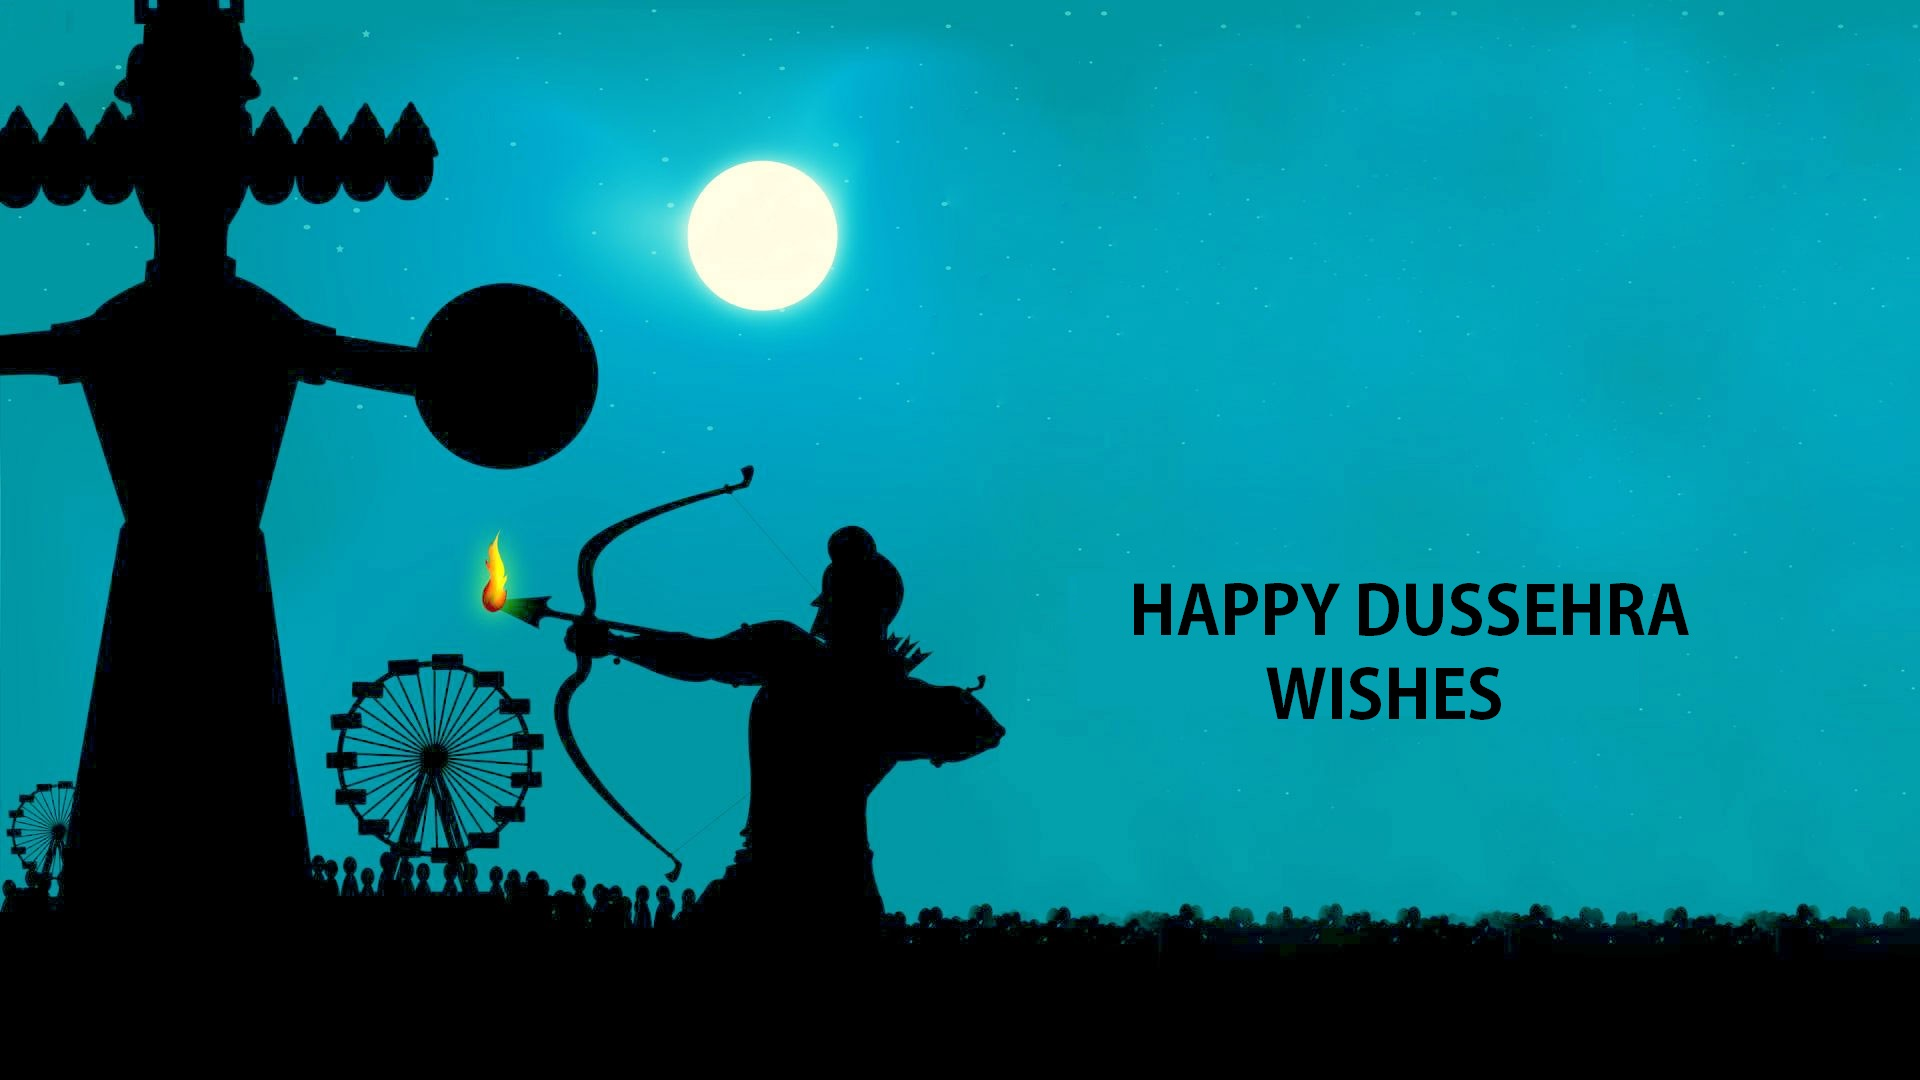 Best Whatsapp Status Sms Messages Quotes Wallpapers Happy Dussehra Dasara 2018 Wishes Sms Images Messages